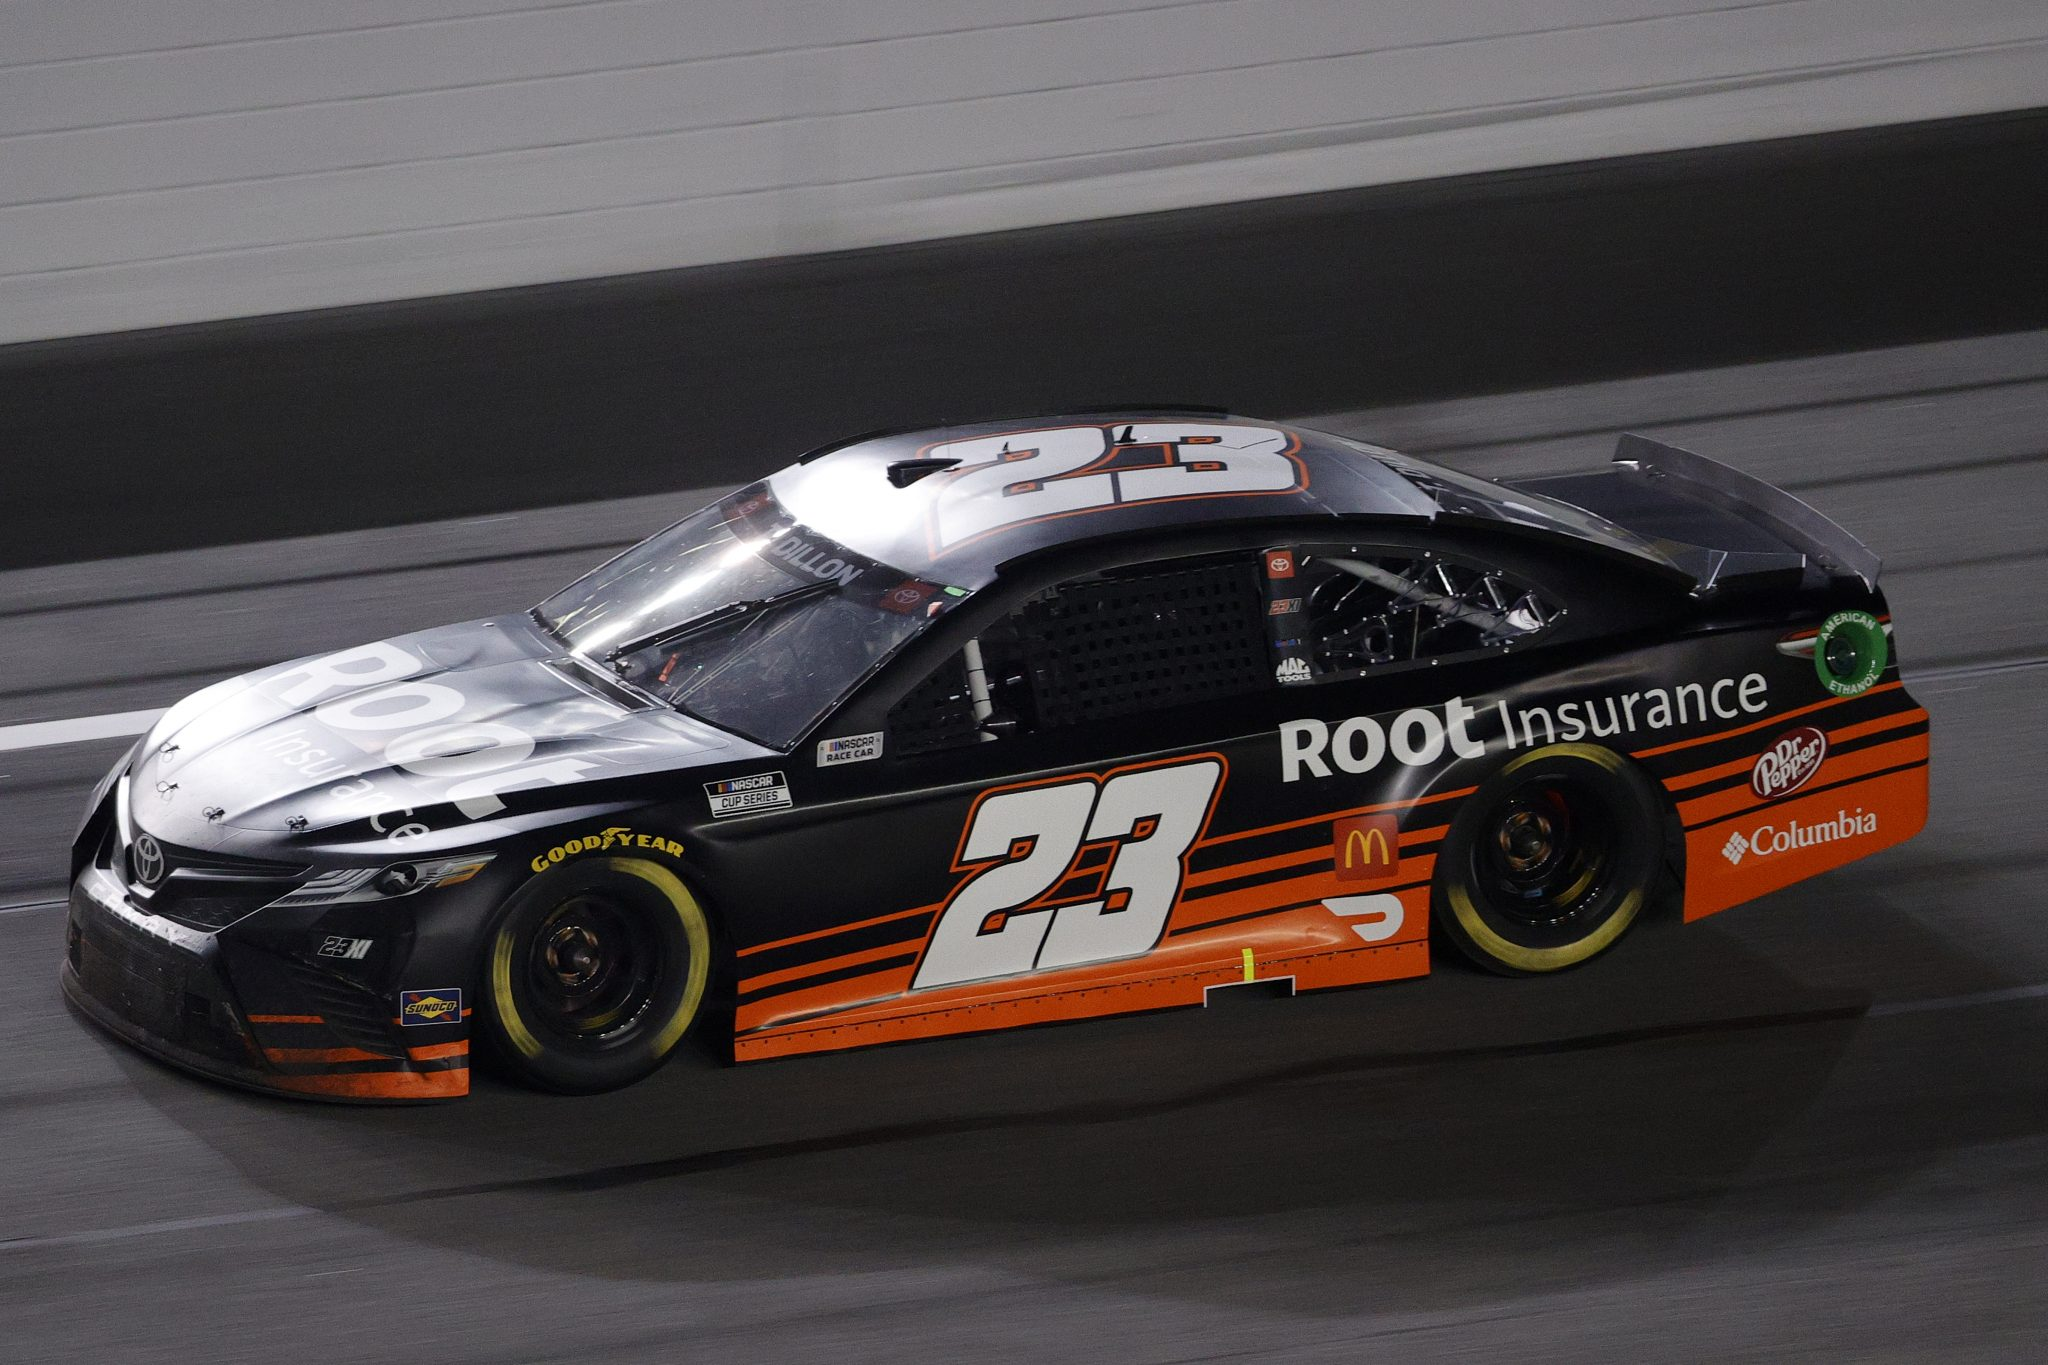 DAYTONA BEACH, FLORIDA - FEBRUARY 09: Ty Dillon, driver of the #23 Root Insurance Toyota, drives during the NASCAR Cup Series Busch Clash at Daytona at Daytona International Speedway on February 09, 2021 in Daytona Beach, Florida. (Photo by Chris Graythen/Getty Images) | Getty Images